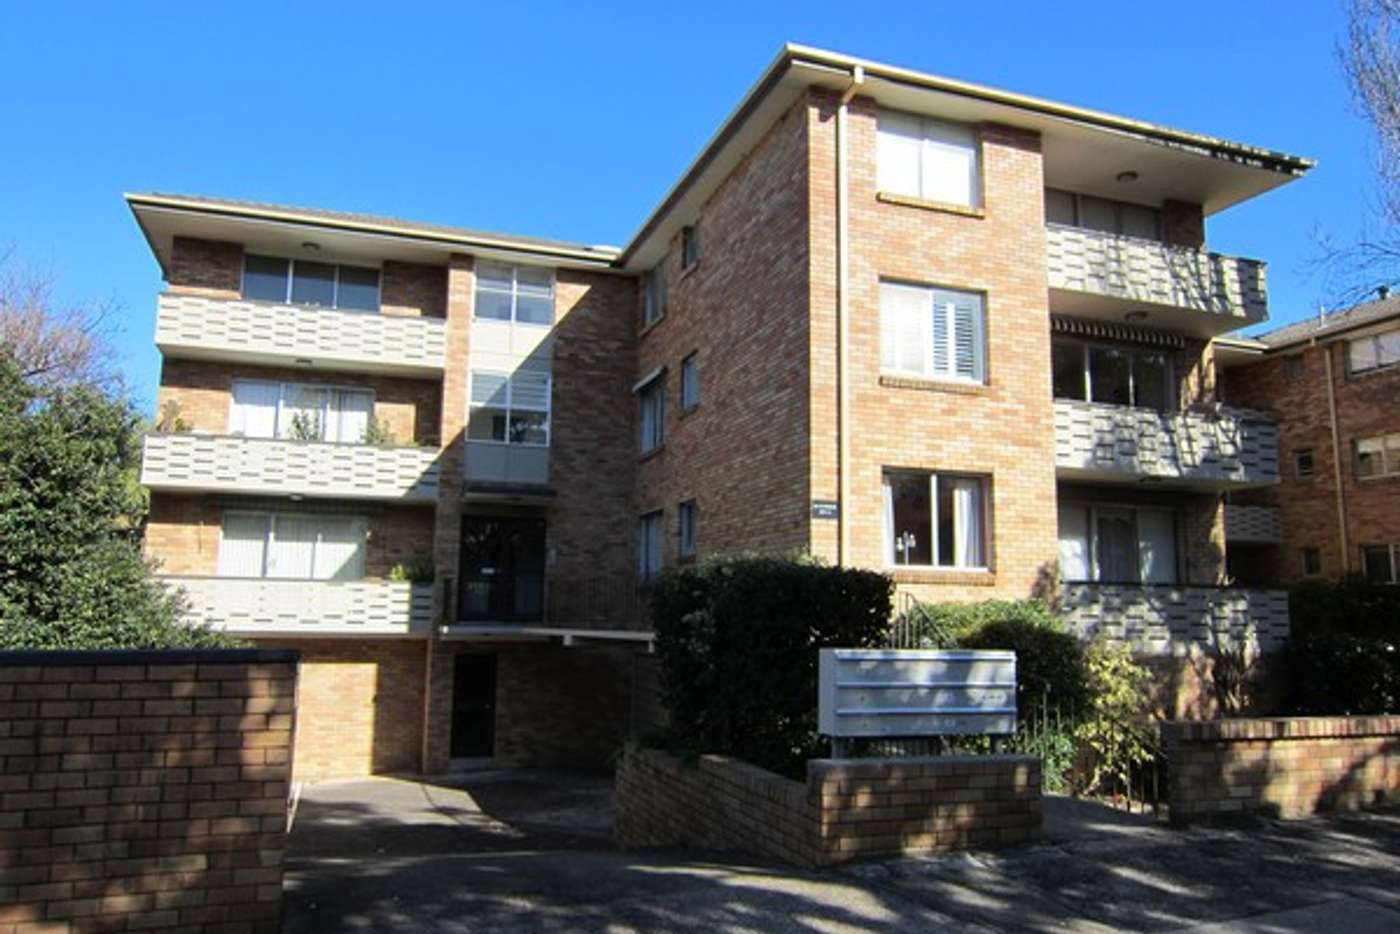 Main view of Homely apartment listing, 7/103 Wycombe Road, Neutral Bay NSW 2089